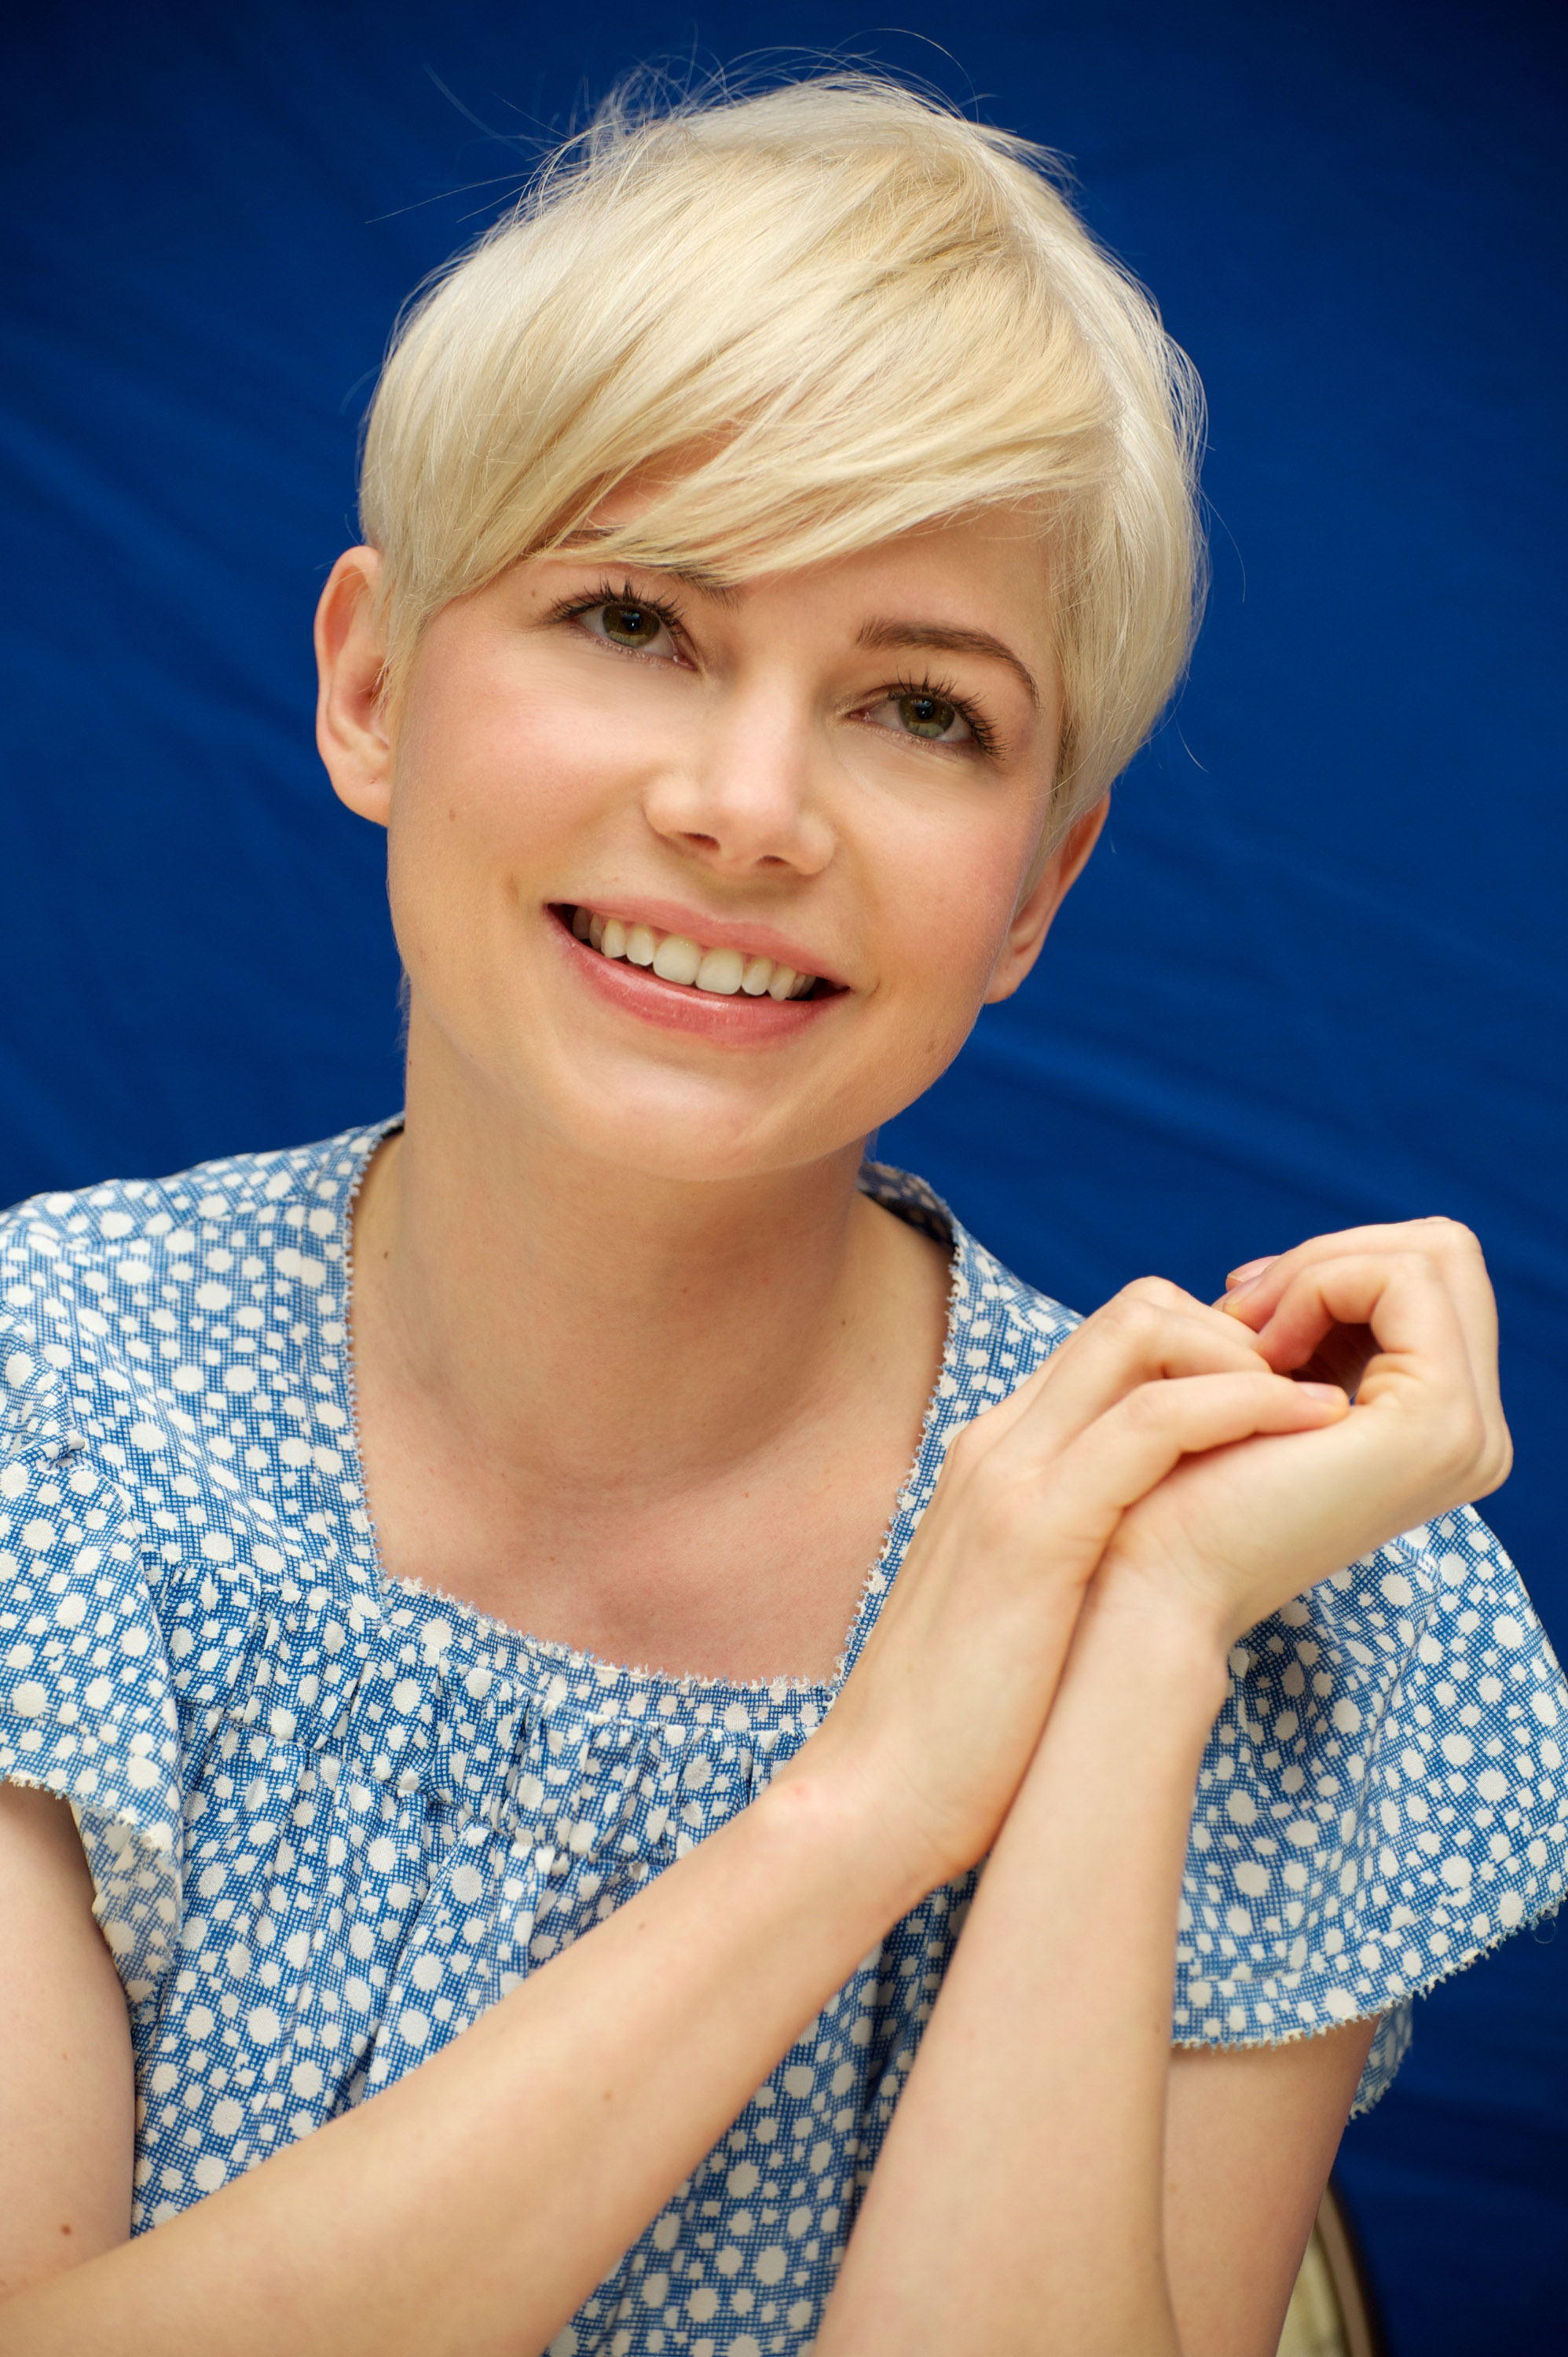 Blonde Hair Pixie Women Hairstyles